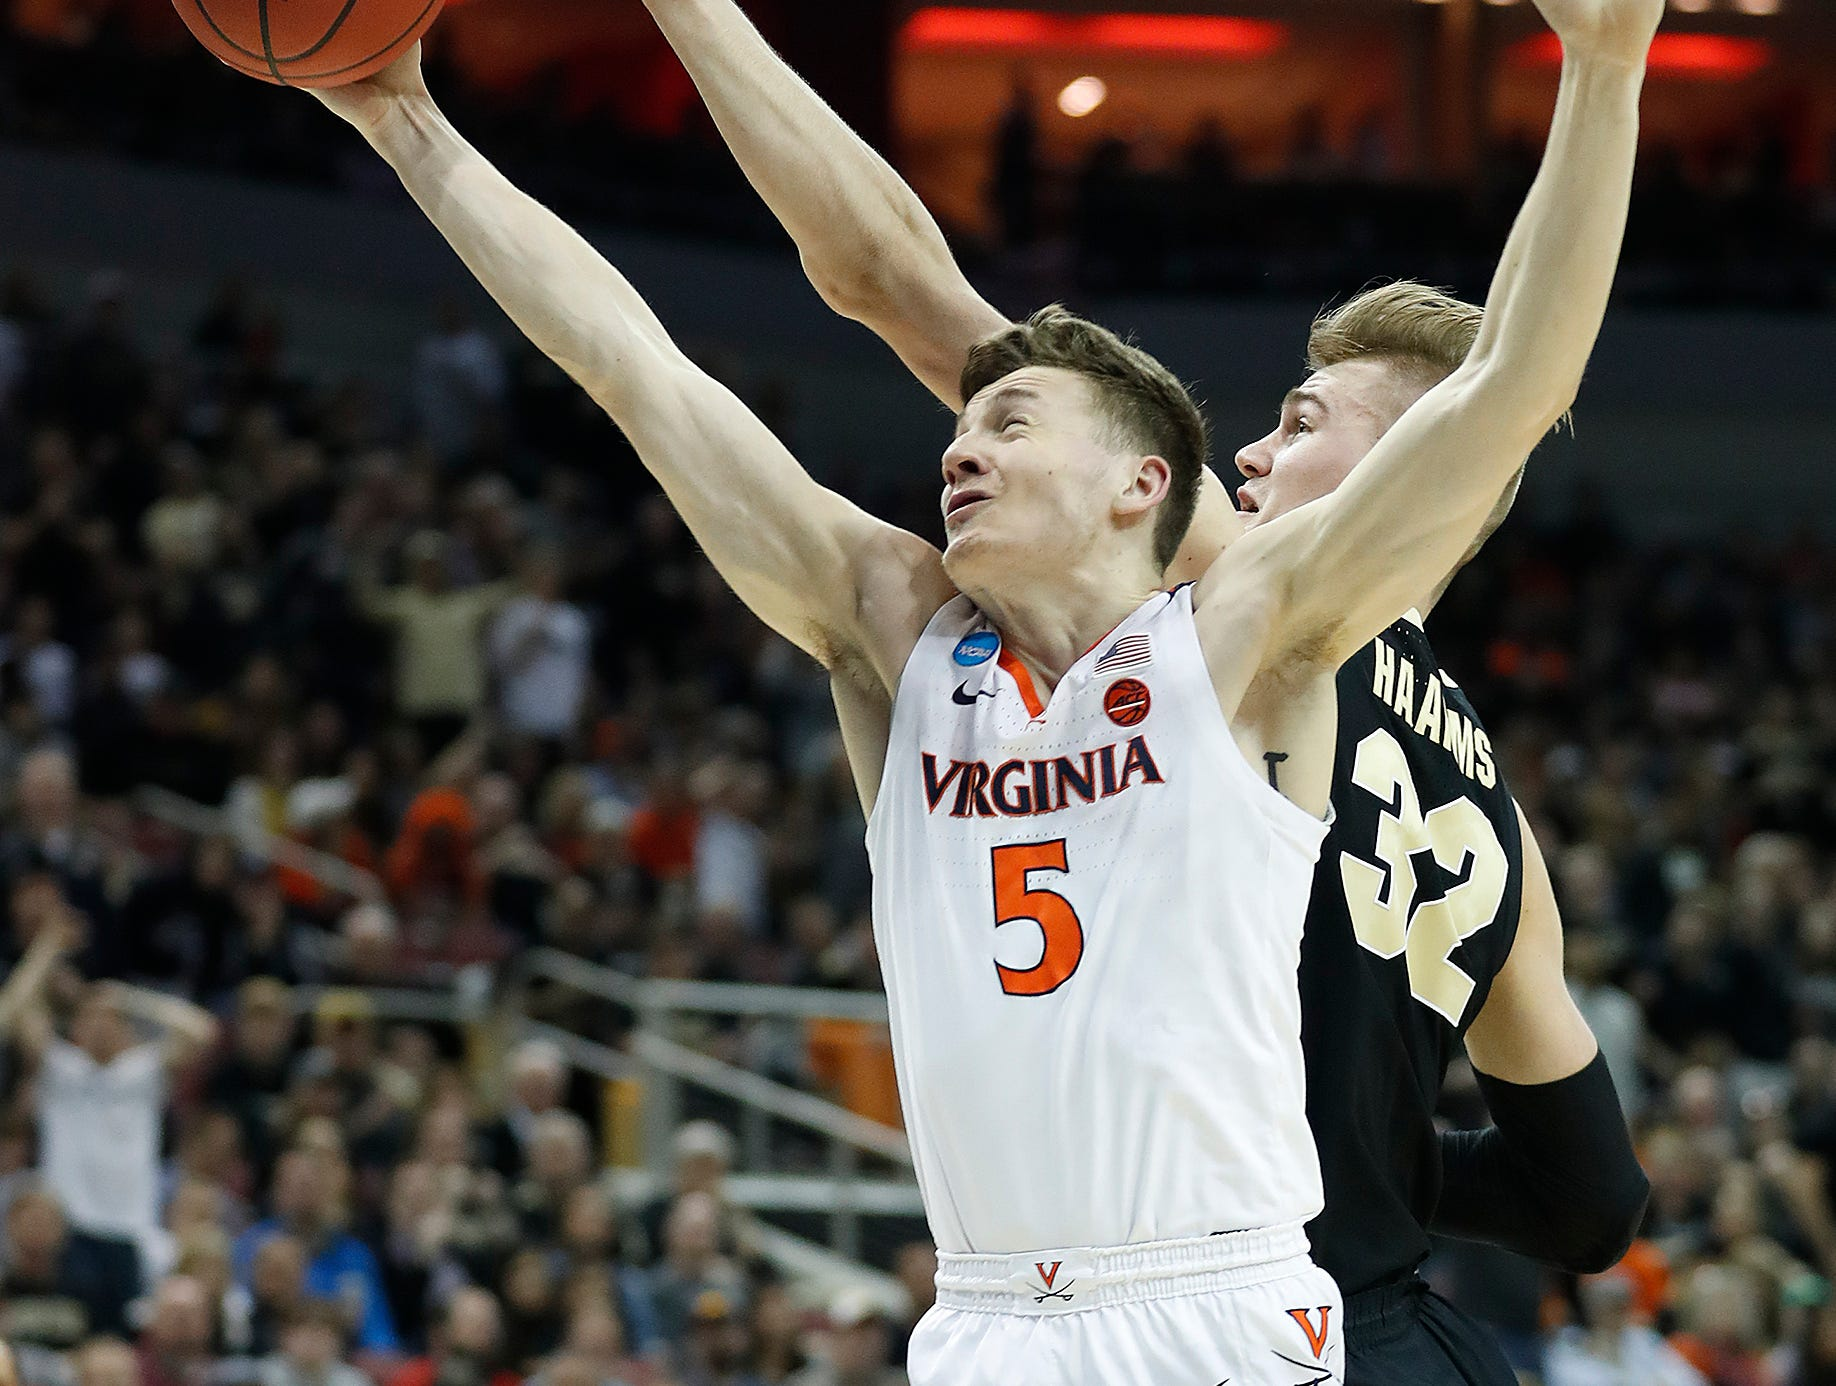 """Virginia Cavaliers guard Kyle Guy (5) and Purdue Boilermakers center Matt Haarms (32) fight for a rebound in the first half of their NCAA Division I Basketball Championship """"Elite 8"""" basketball game at the KFC Yum! Center in Louisville, KY., on Saturday, Mar 30, 2019."""